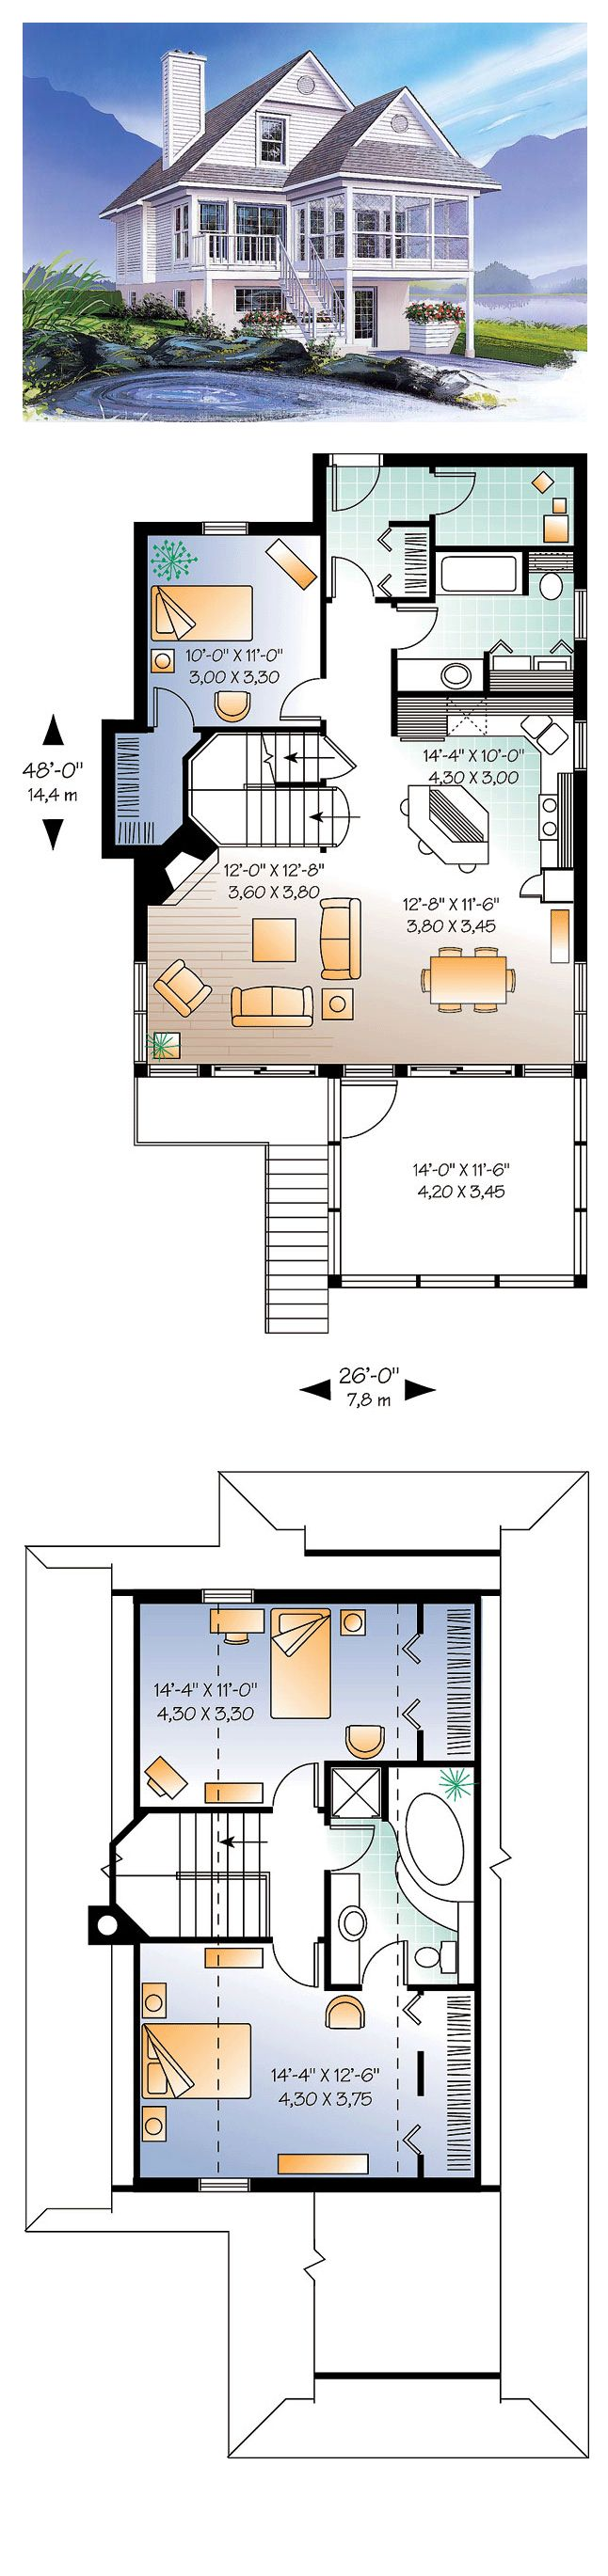 1000 Images About Hillside Home Plans On Pinterest